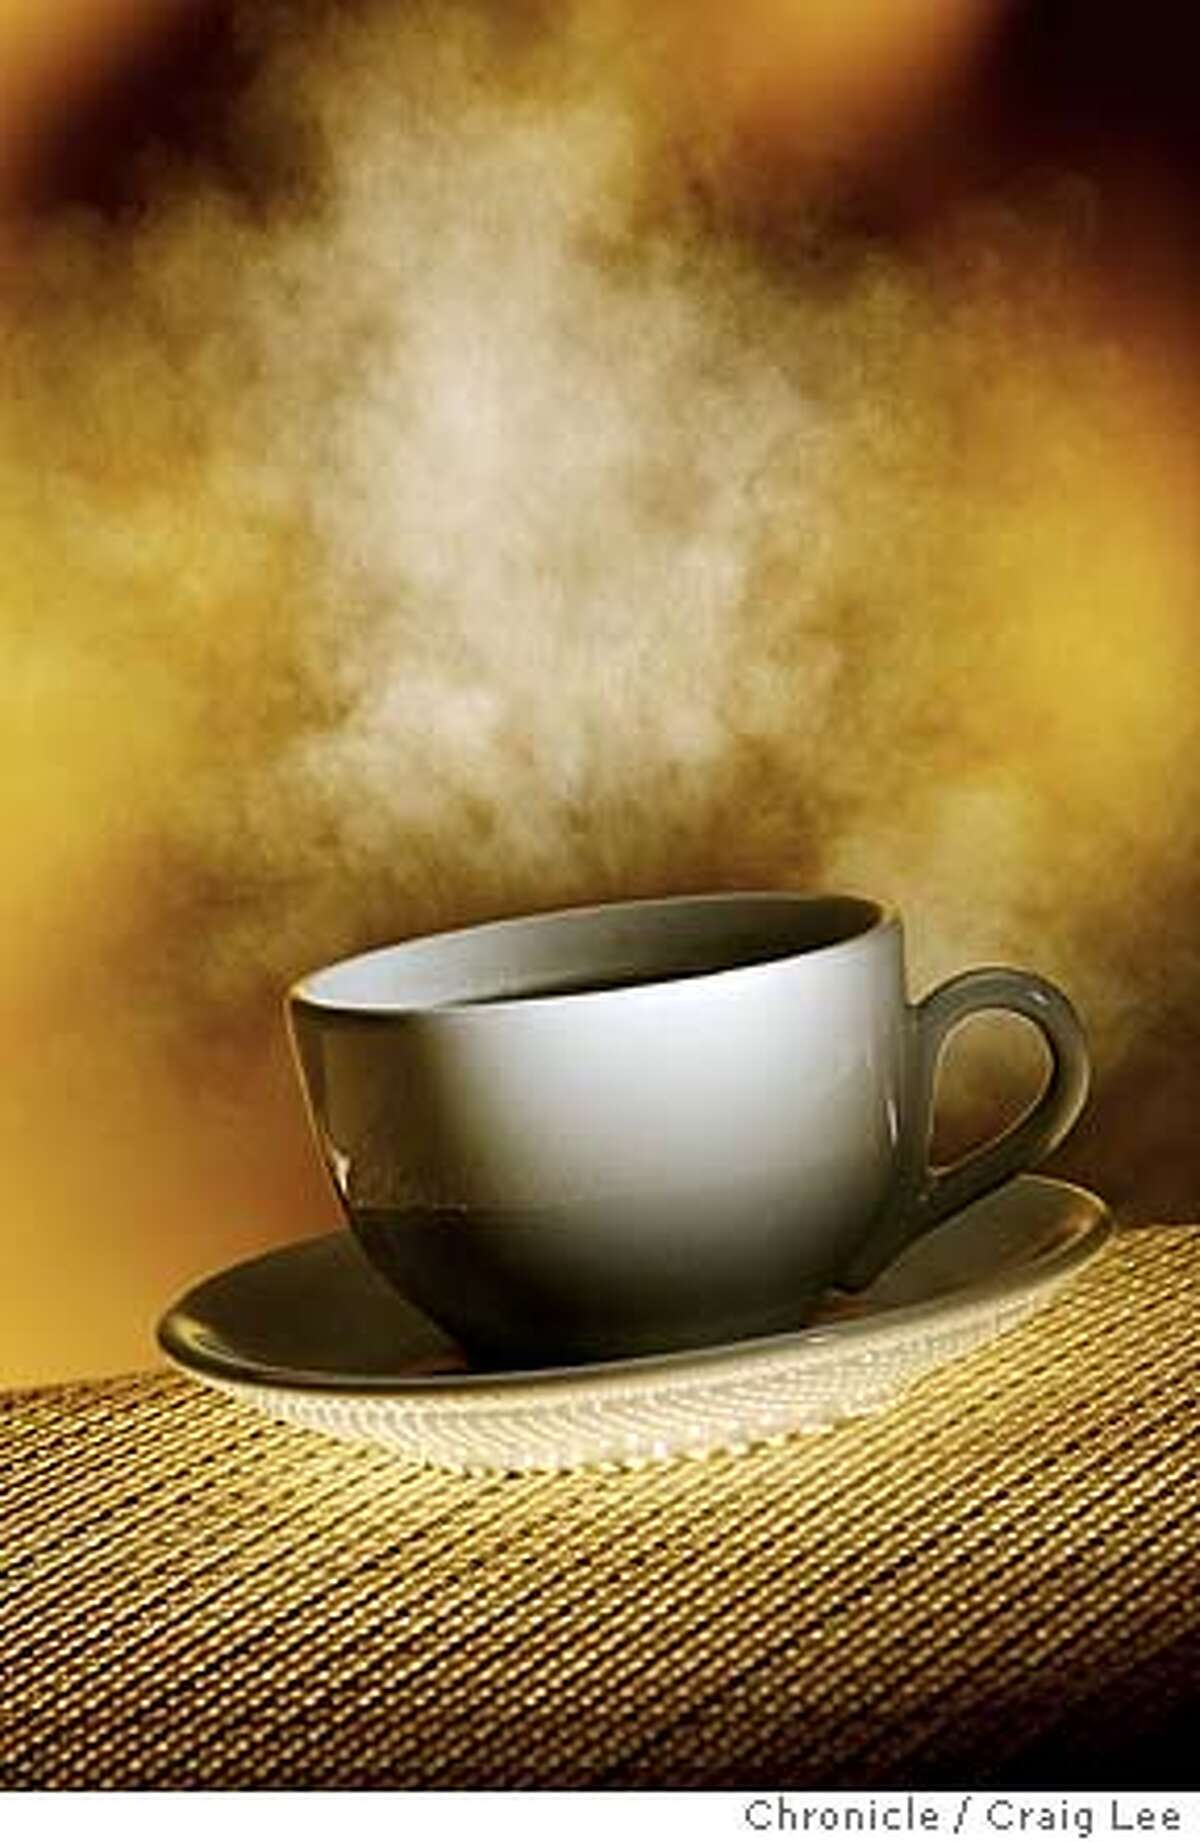 Photo illustration of a steaming cup of coffee. Event on 6/9/04 in San Francisco. Craig Lee / The Chronicle